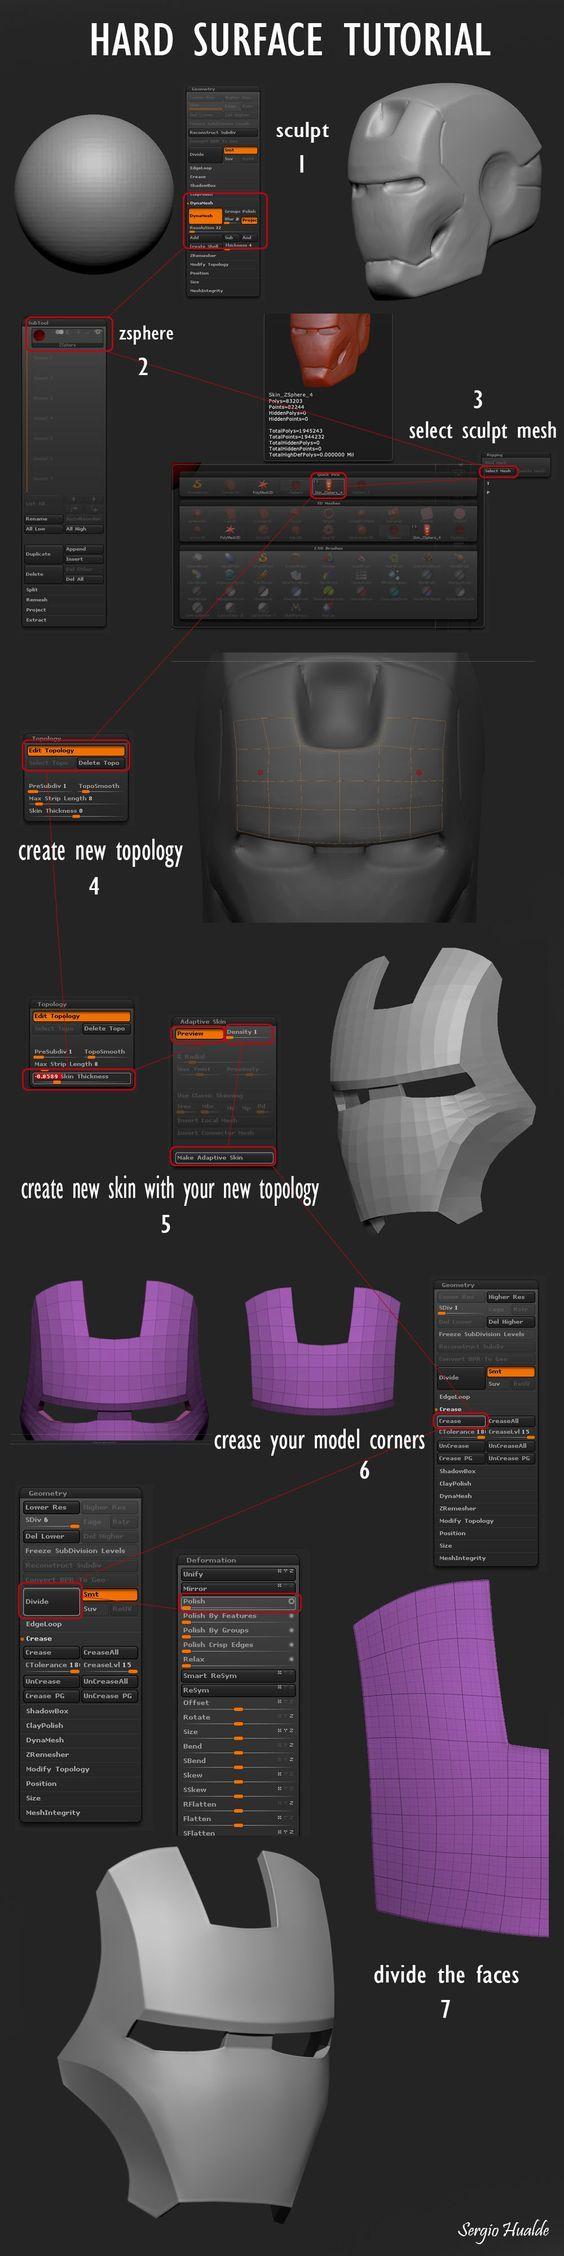 http://www.zbrushcentral.com/showthread.php?185674-My-Zbrush-3D-Models-Sergiopatin99/page5: